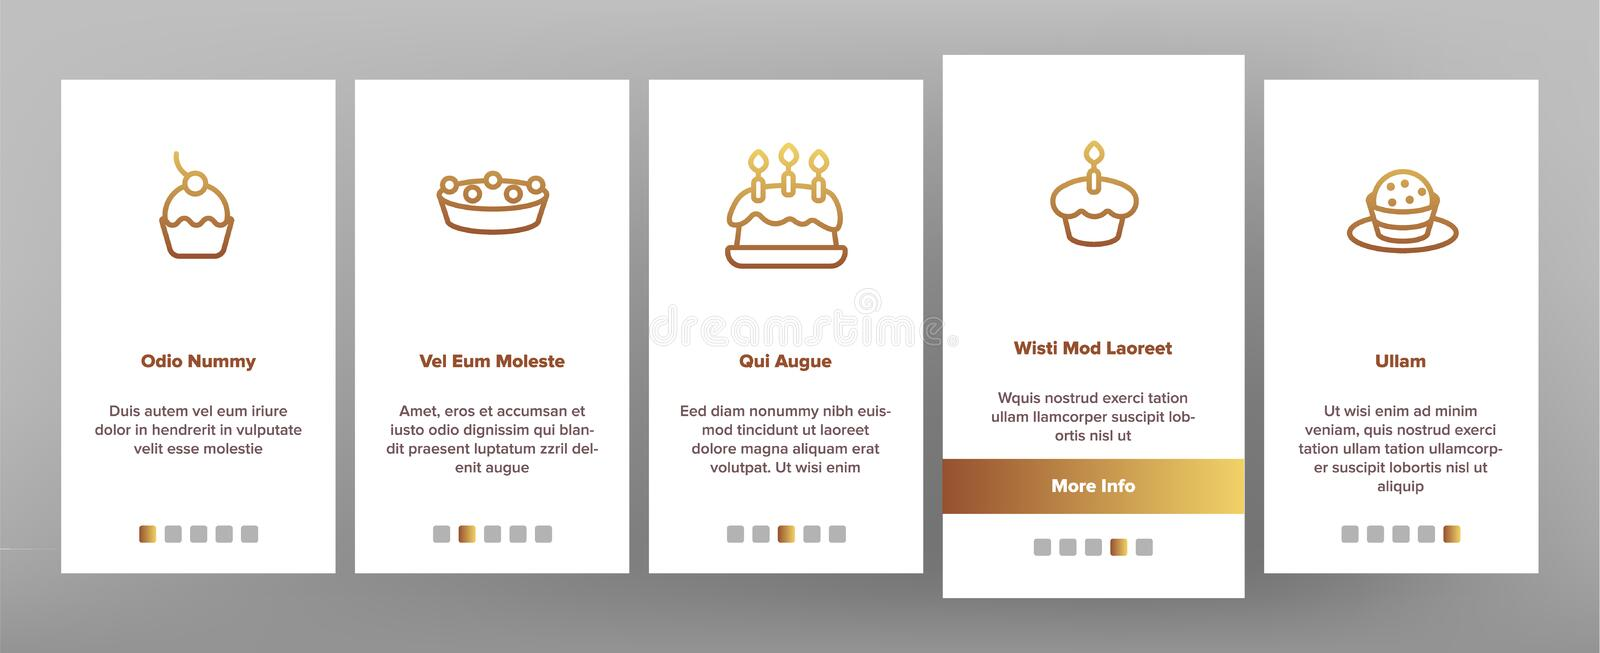 Sweet Cheesecakes, Bakery Vector Onboarding Mobile App Page Screen. Pastry. Birthday Party Cakes, Biscuits, Pies. Dessert Cookies. Confectionery Illustrations royalty free illustration